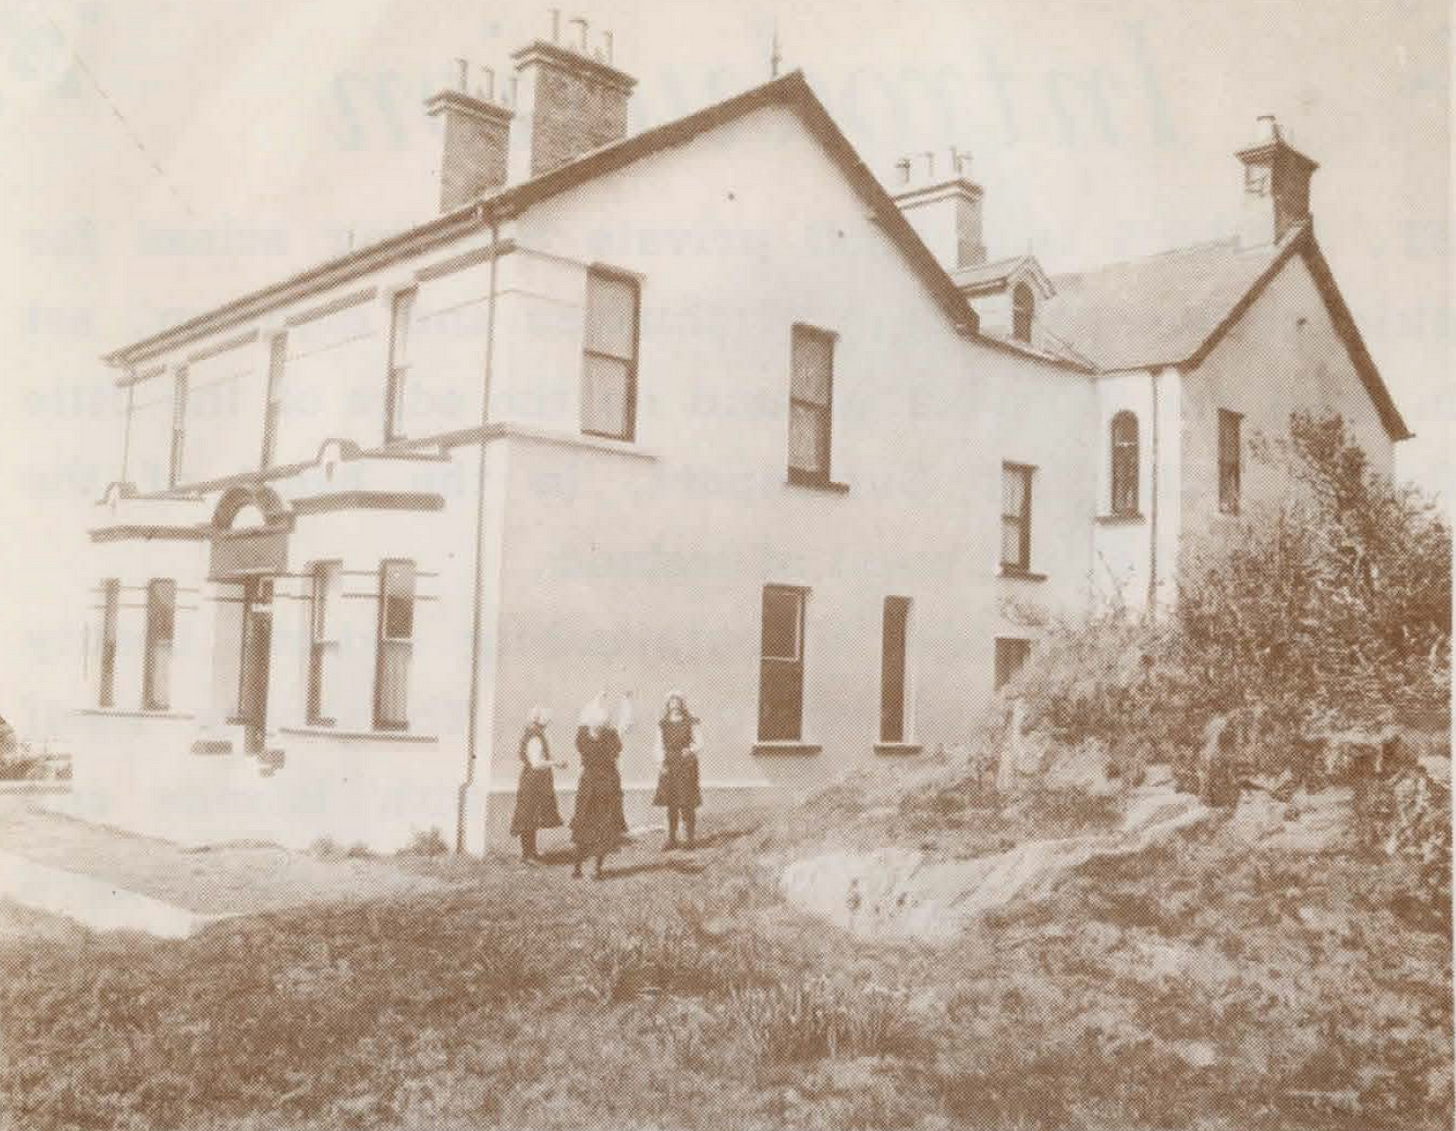 Black and white photograph of a large two-story house, with three women in nineteenth century schoolgirl garb playing out front.